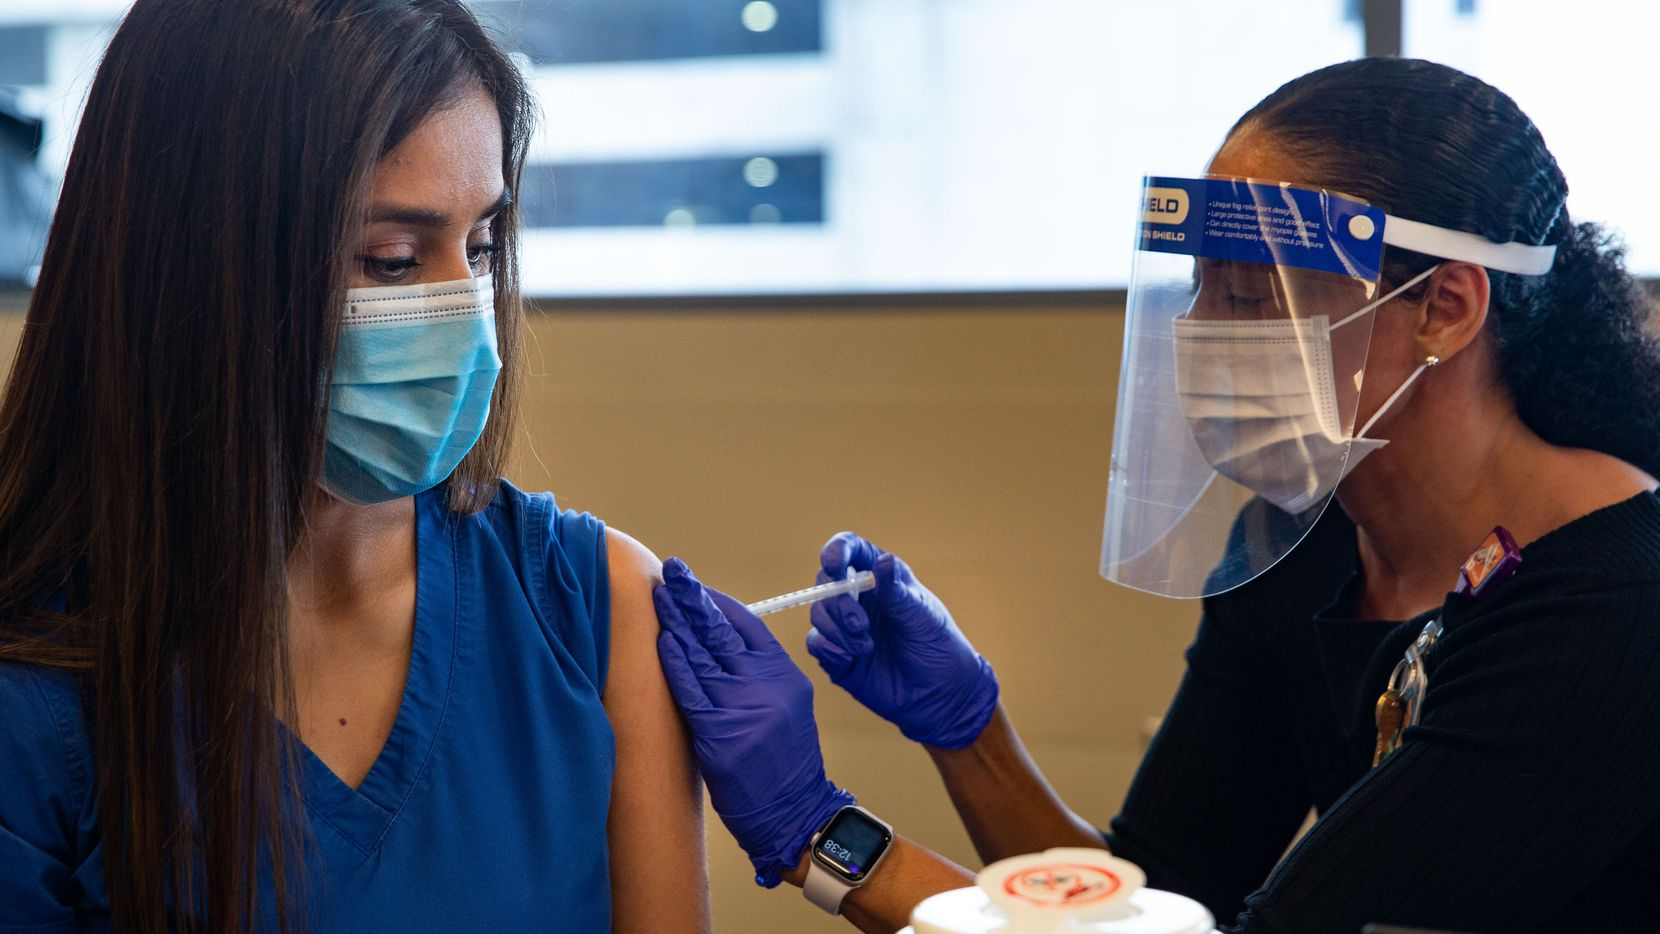 COVID unit nurse Perla Sanchez-Perez (left) receives a dose of the Pfizer COVID-19 vaccination from director of occupational health Stephanie Collins during a media event at Parkland Hospital in Dallas.